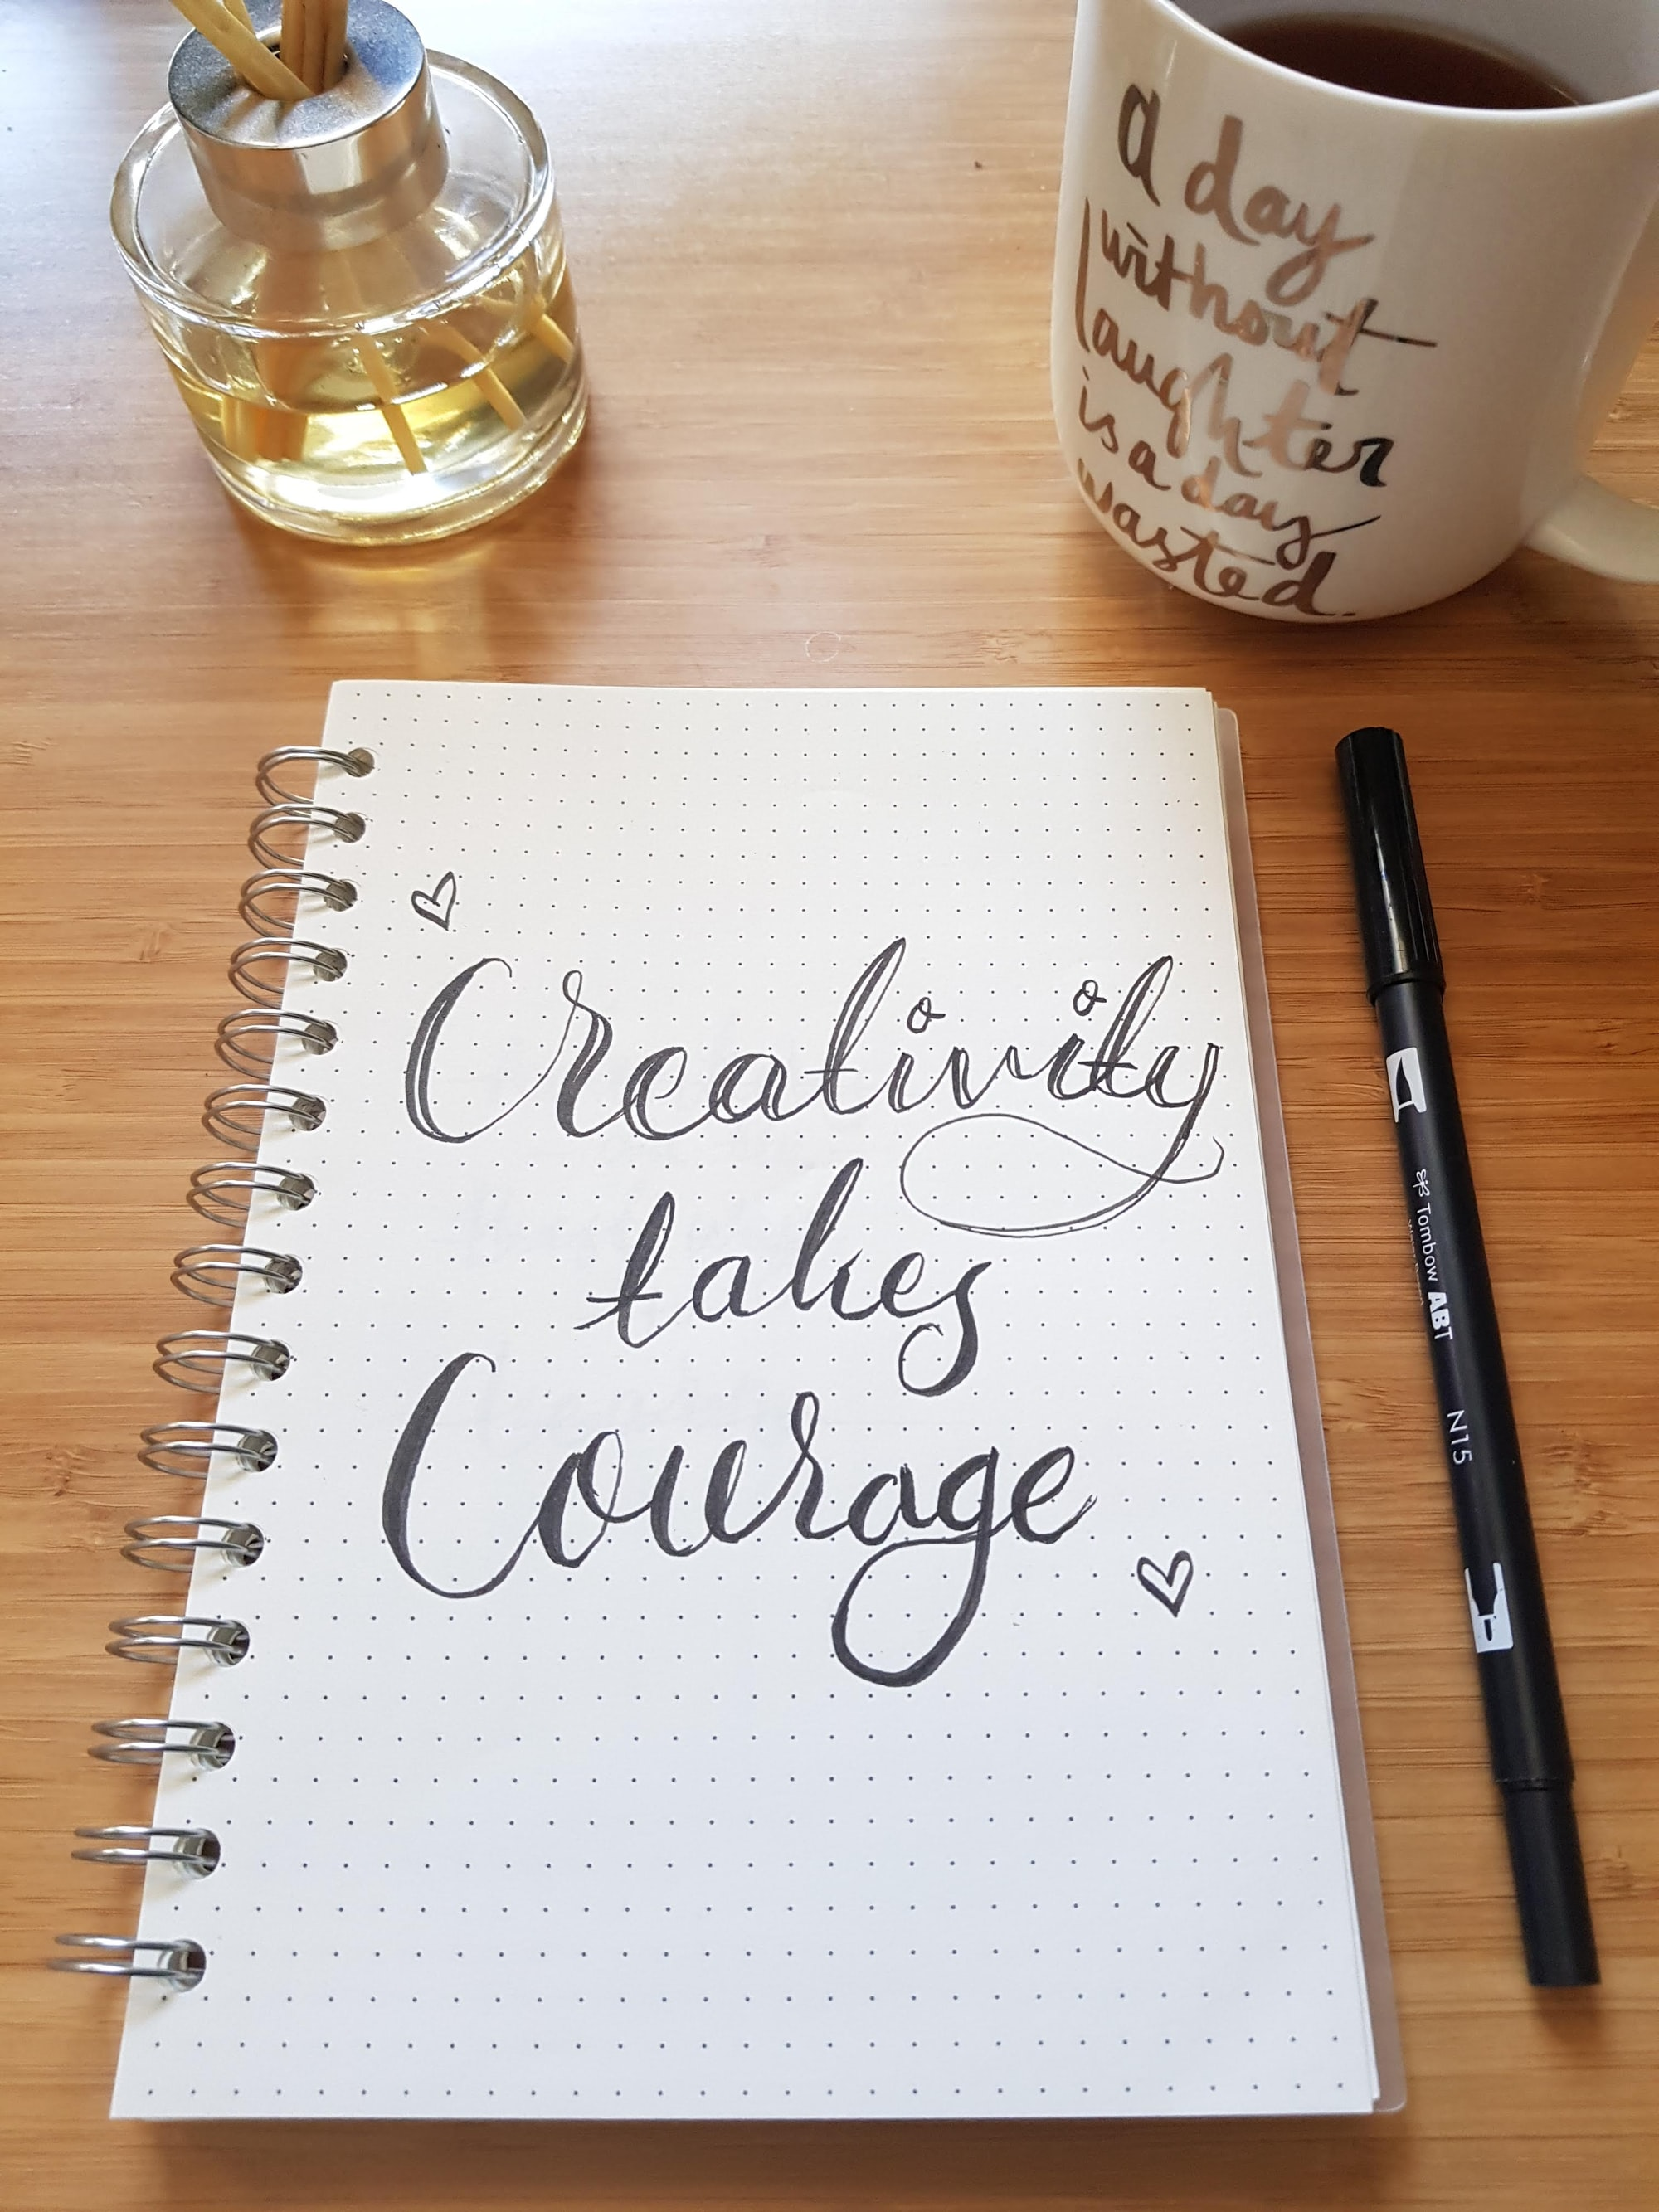 Calligraphy Quotes - Creativity takes Courage 2